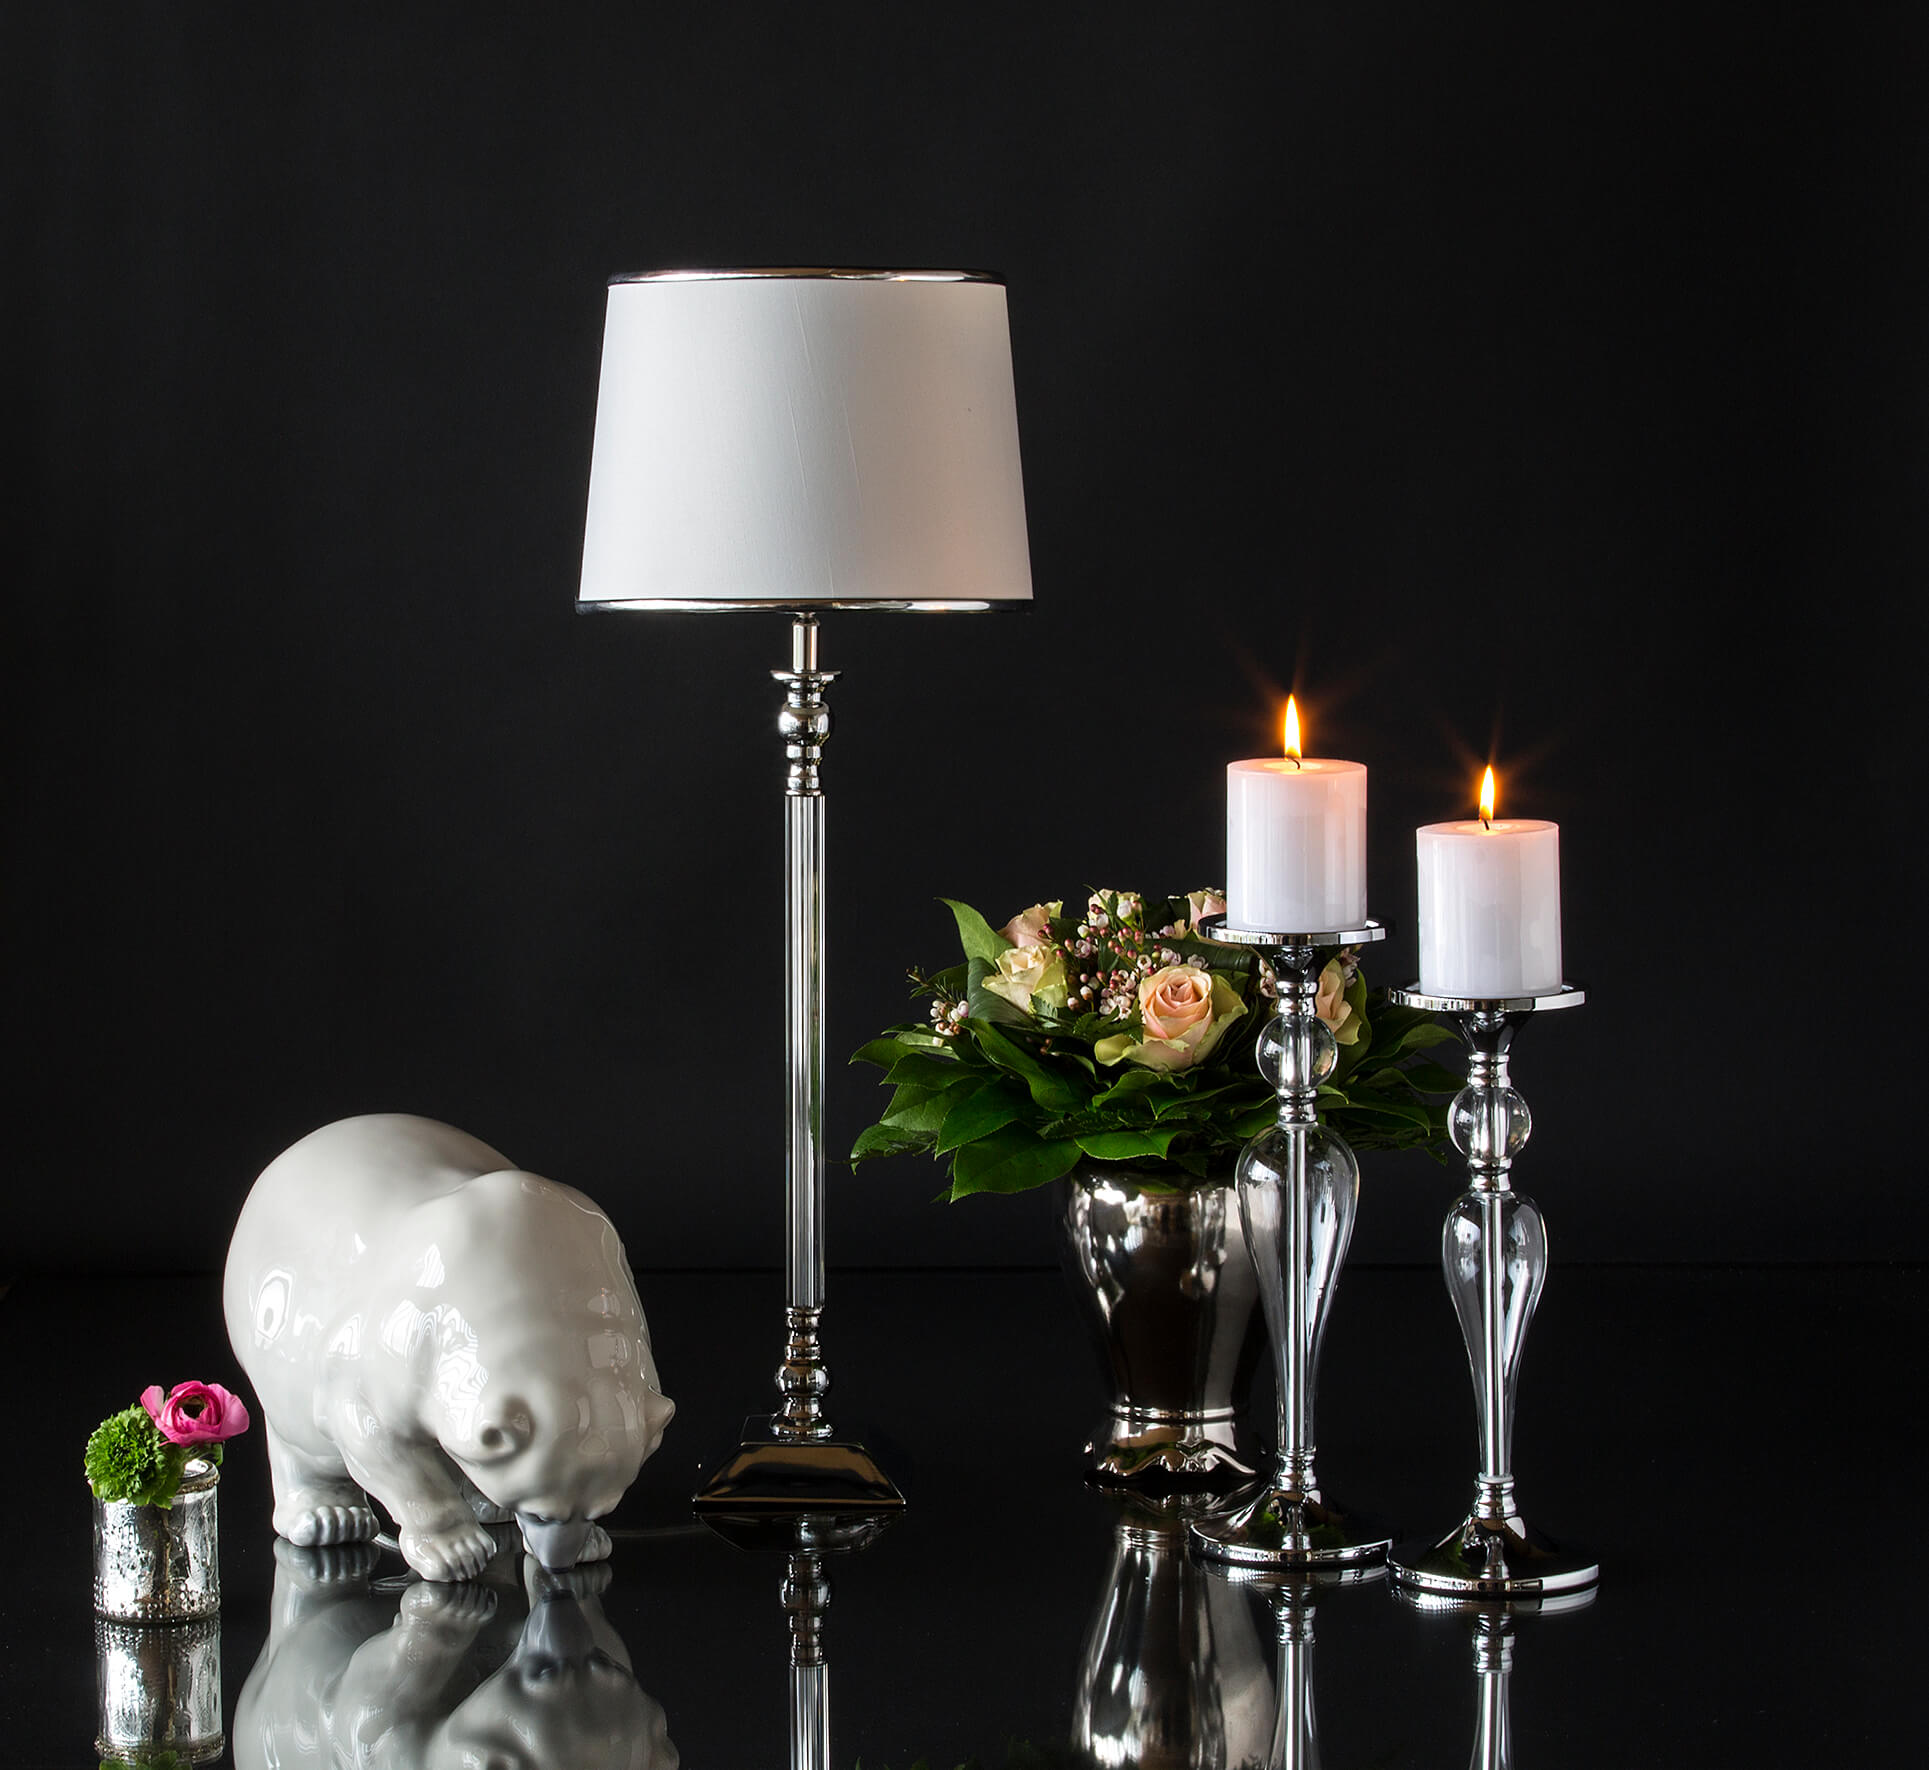 Large figurine of Polar bear together with lamp, candlesticks and flower pot